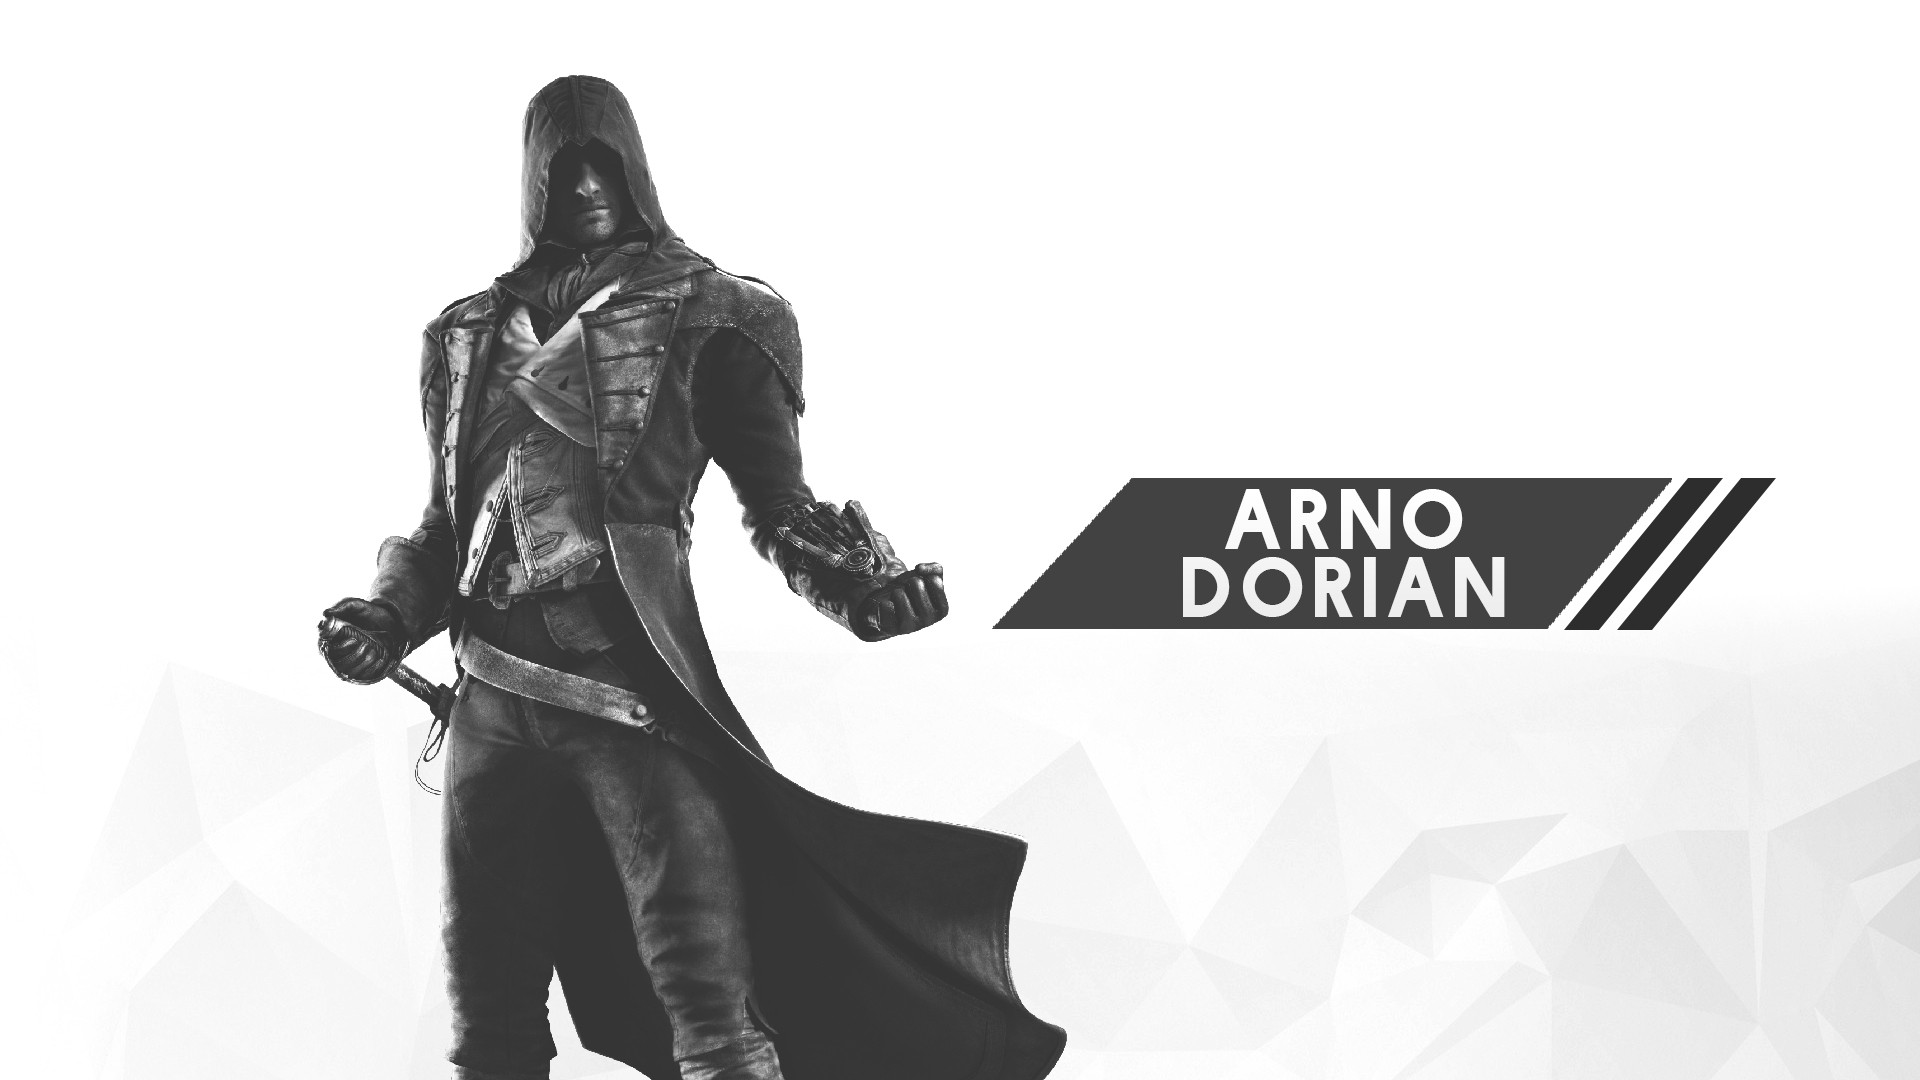 General 1920x1080 Assassin's Creed digital art minimalism 2D white white background video games Arno Dorian Assassin's Creed:  Unity